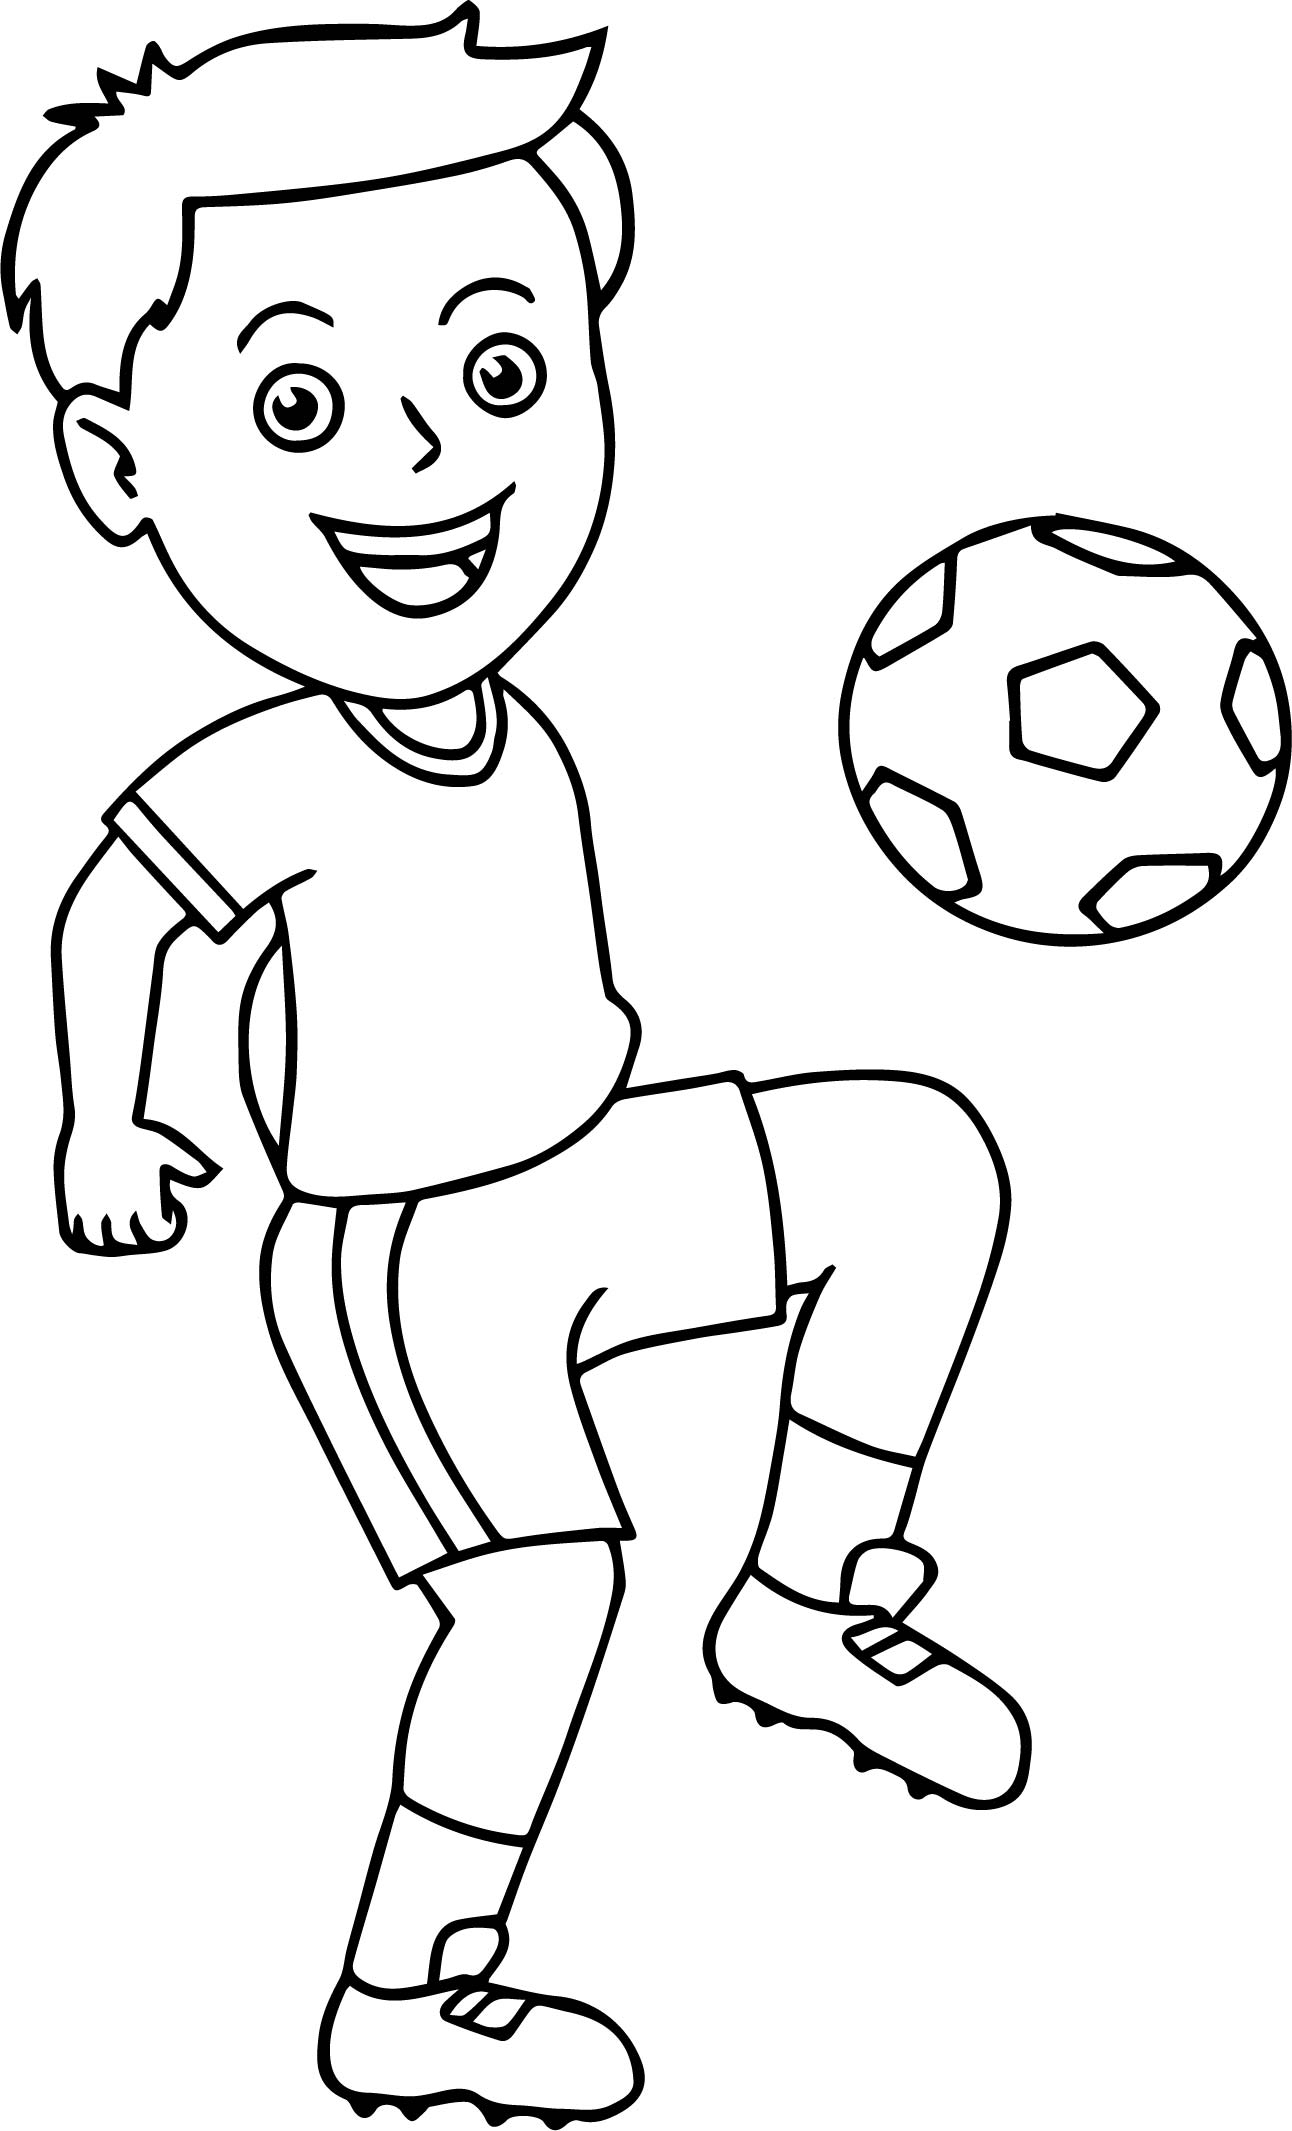 ball coloring pages - soccer boy bouncing soccer ball knee playing football coloring page